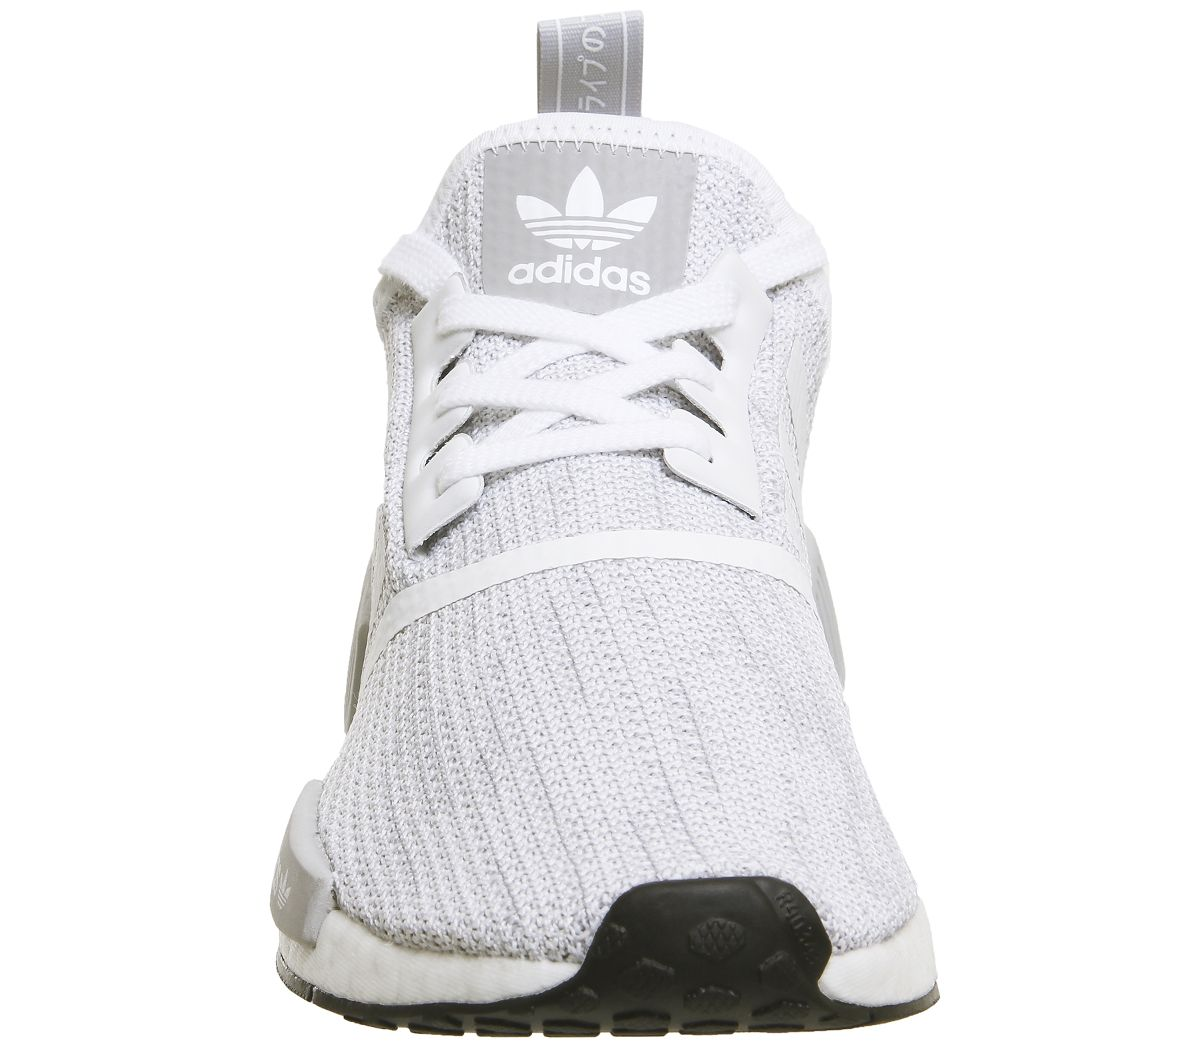 promo code e1366 835a4 adidas Nmd R1 Trainers White Grey Core Black - His trainers